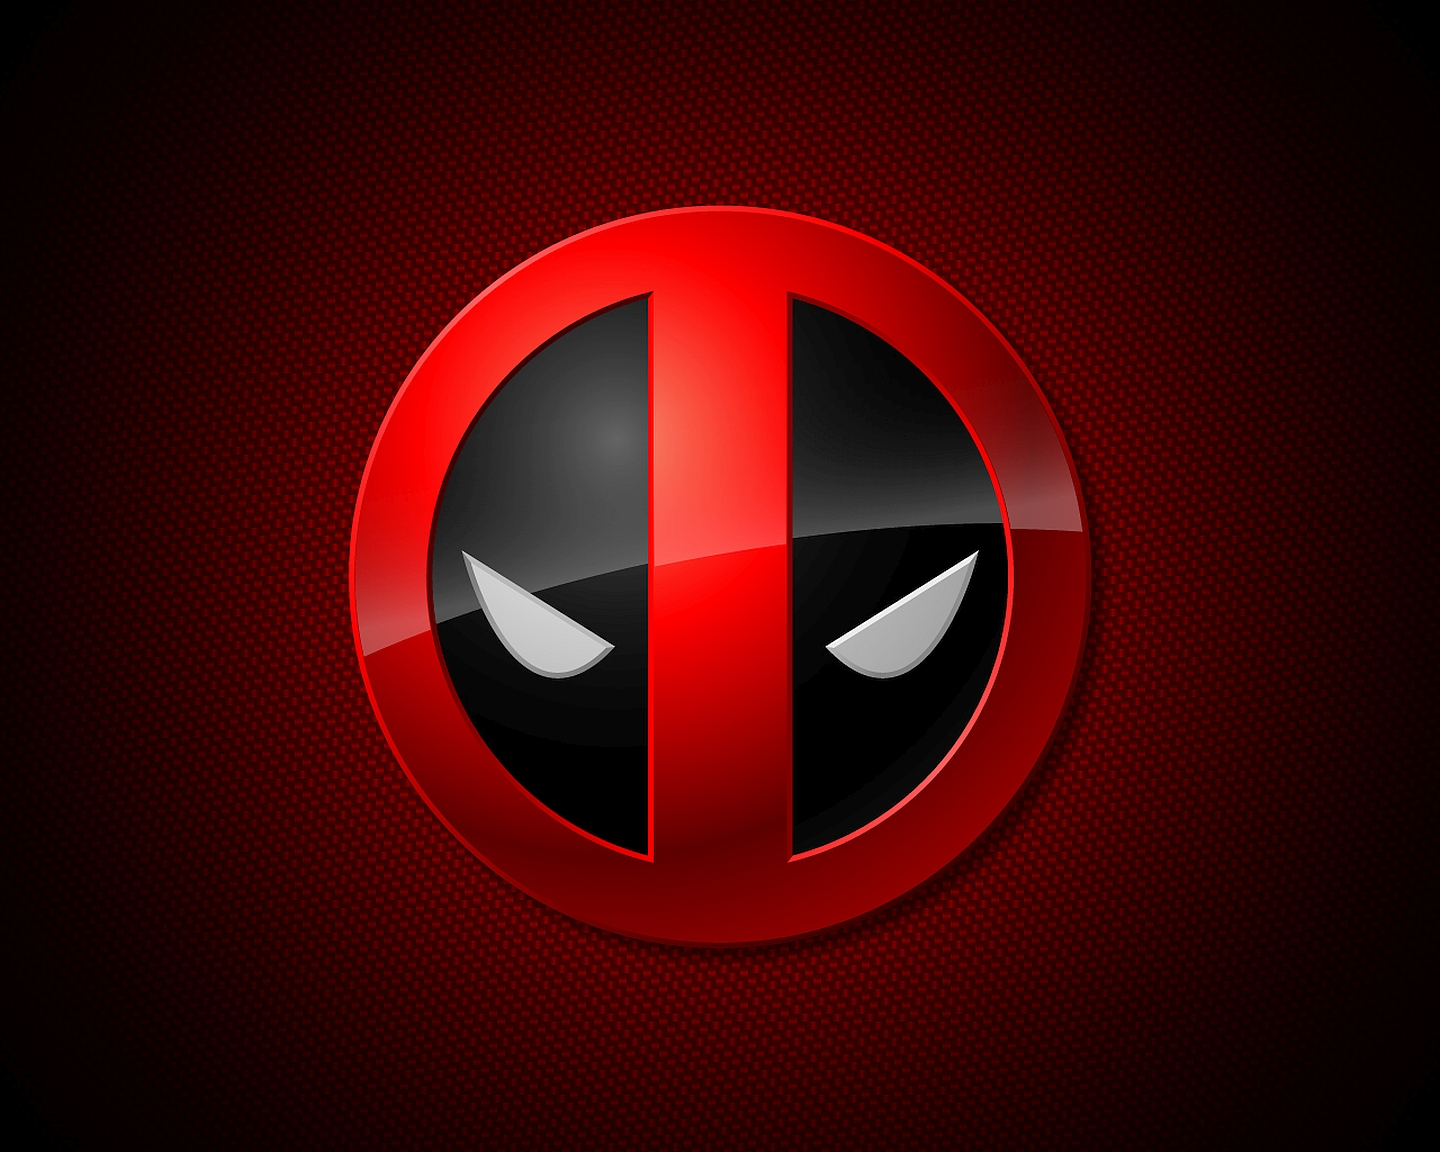 Marvel Deadpool Wallpaper Images & Pictures - Becuo